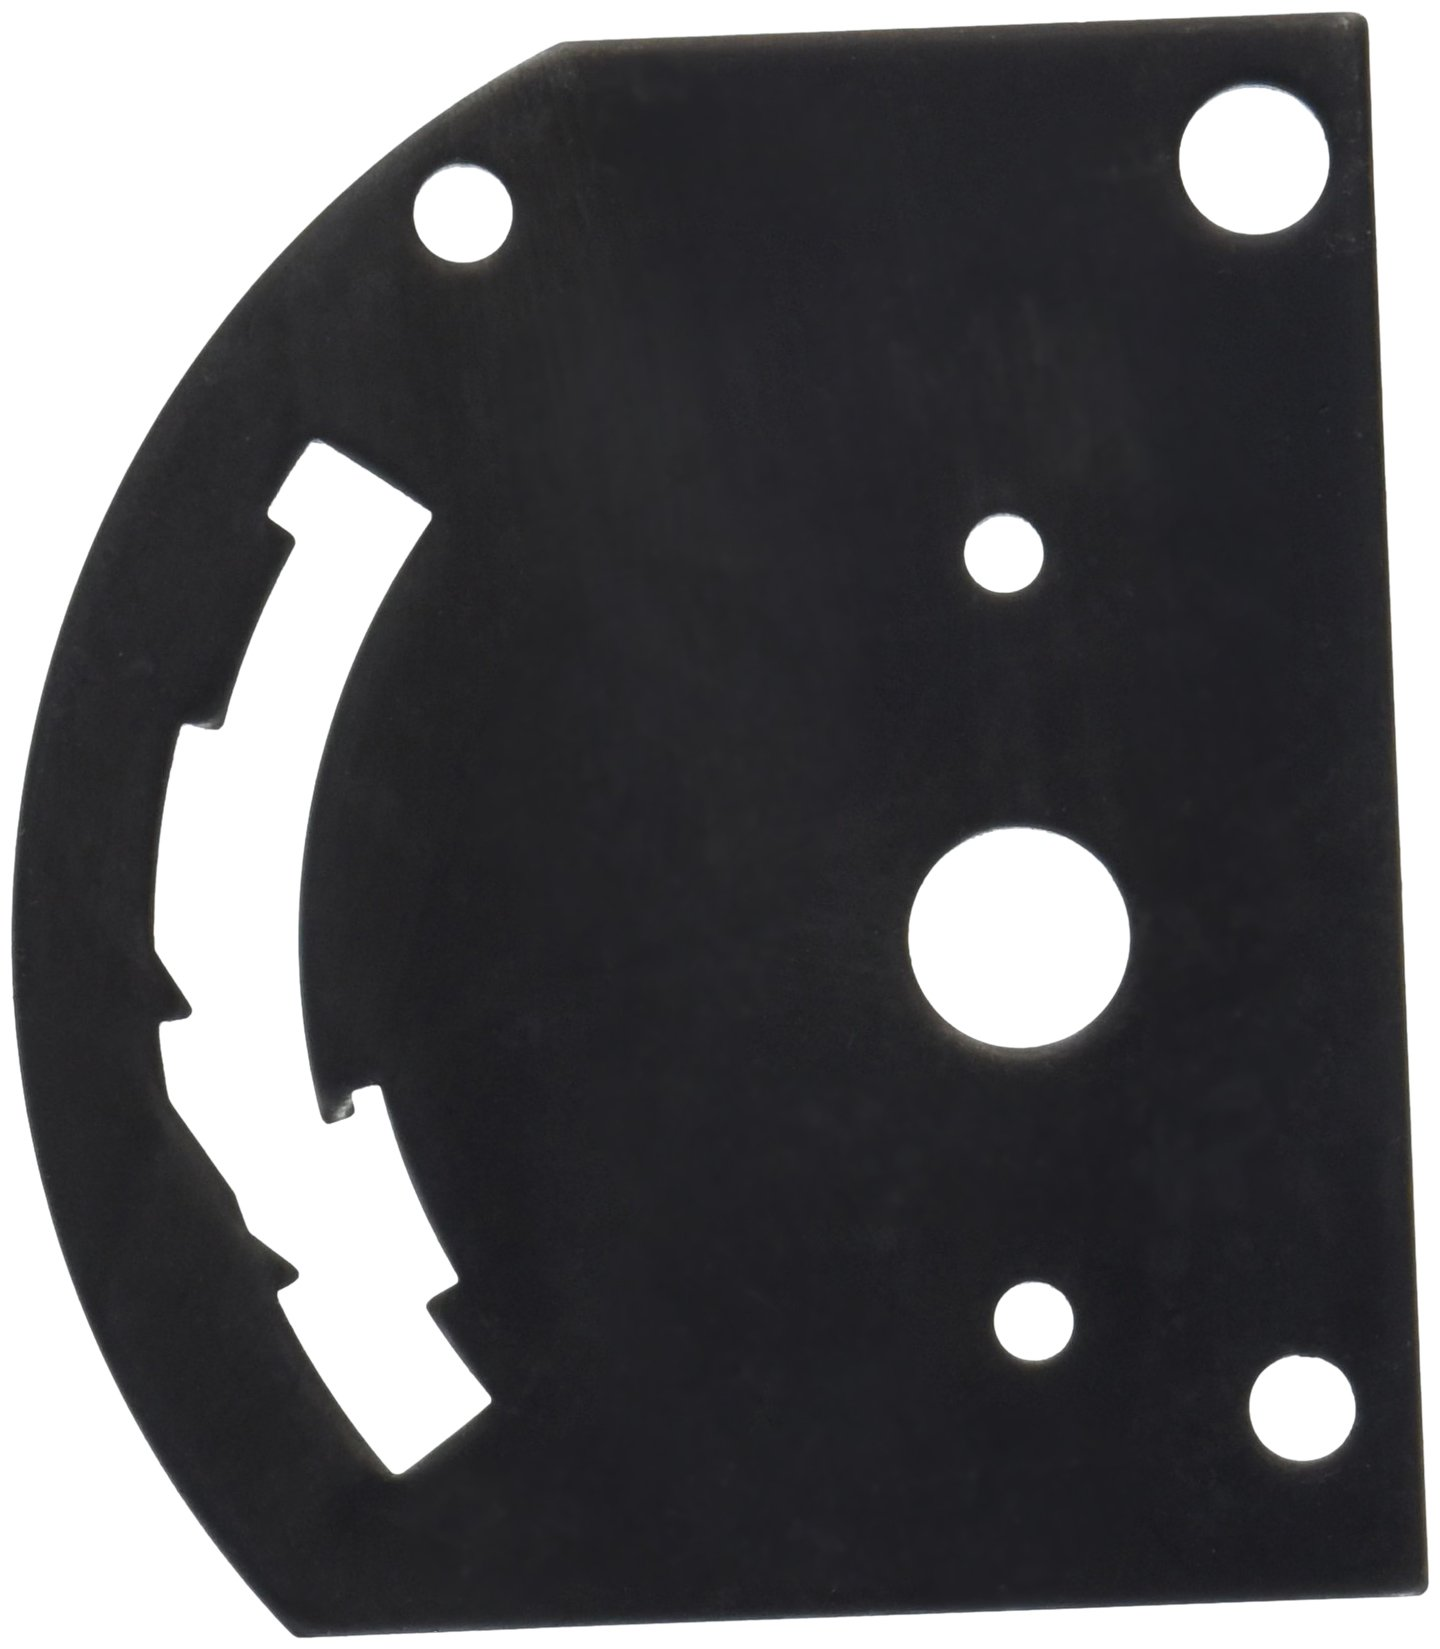 TCI 618014 Forward Pattern Gate Plate for 4-Speed Shifter by TCI